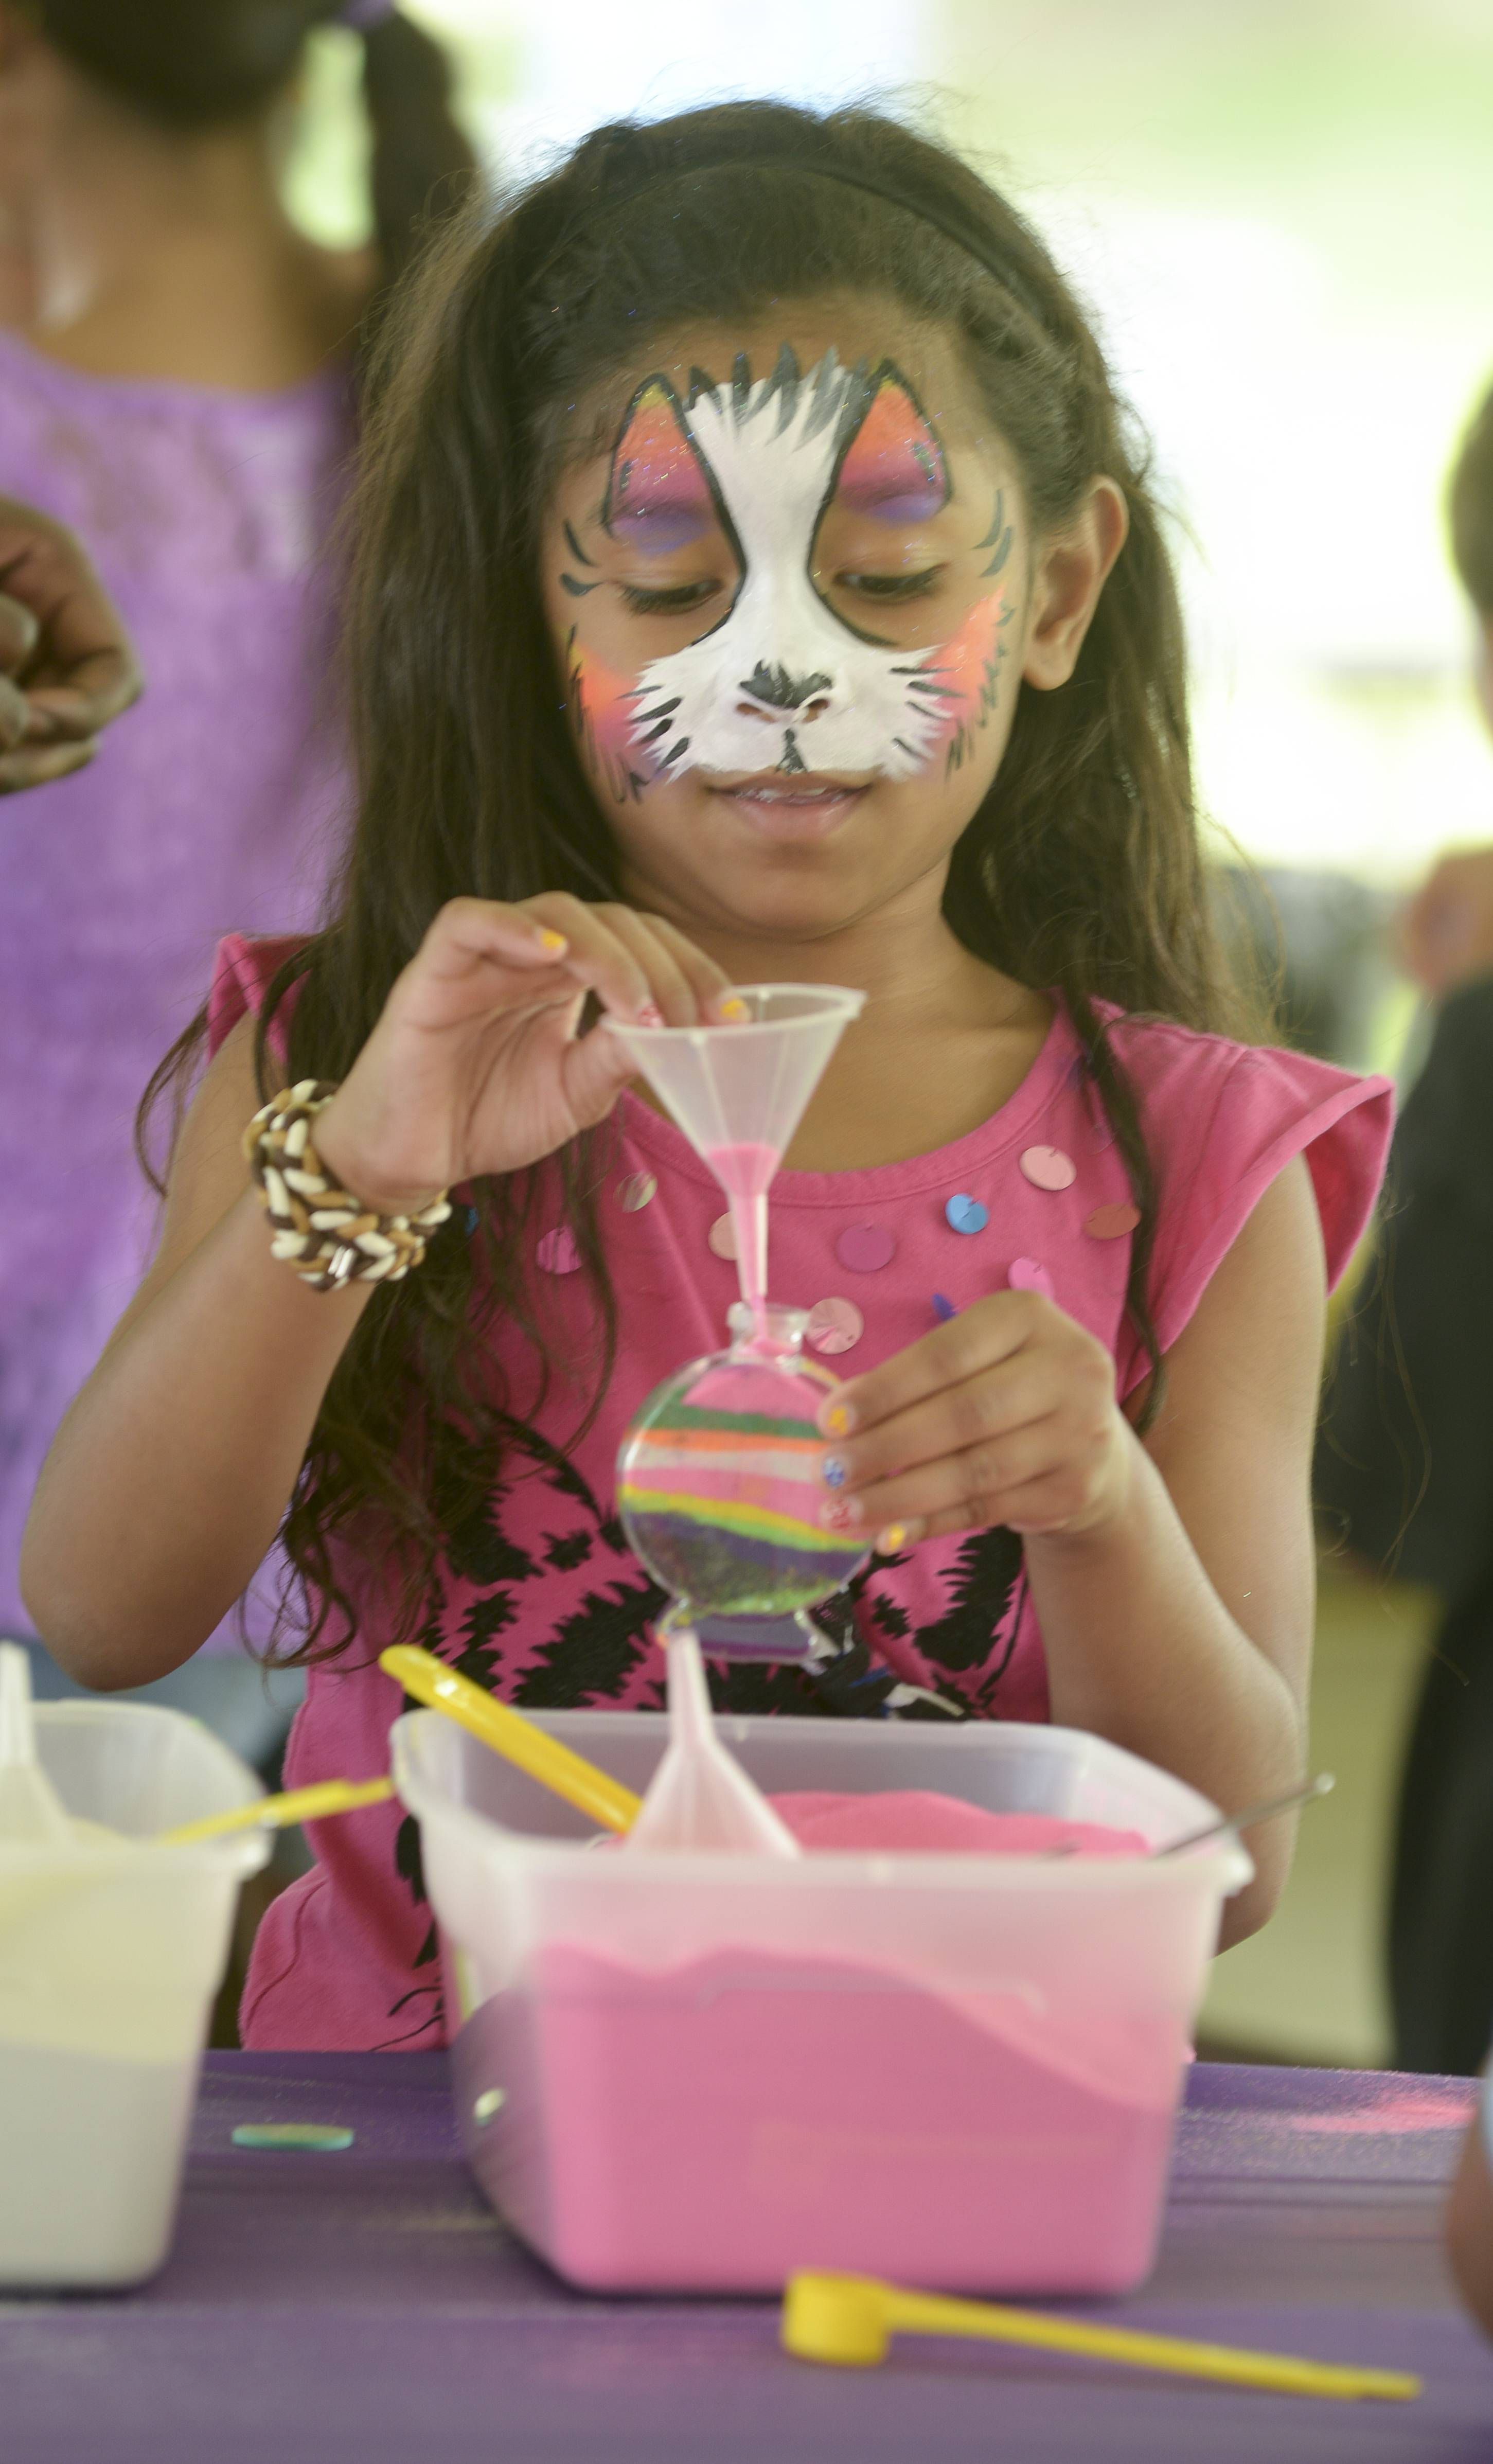 Her face painted, Jadalynn Chatman, 8, of Gurnee makes sand art Saturday while attending the Vernon Hills Summer Celebration.